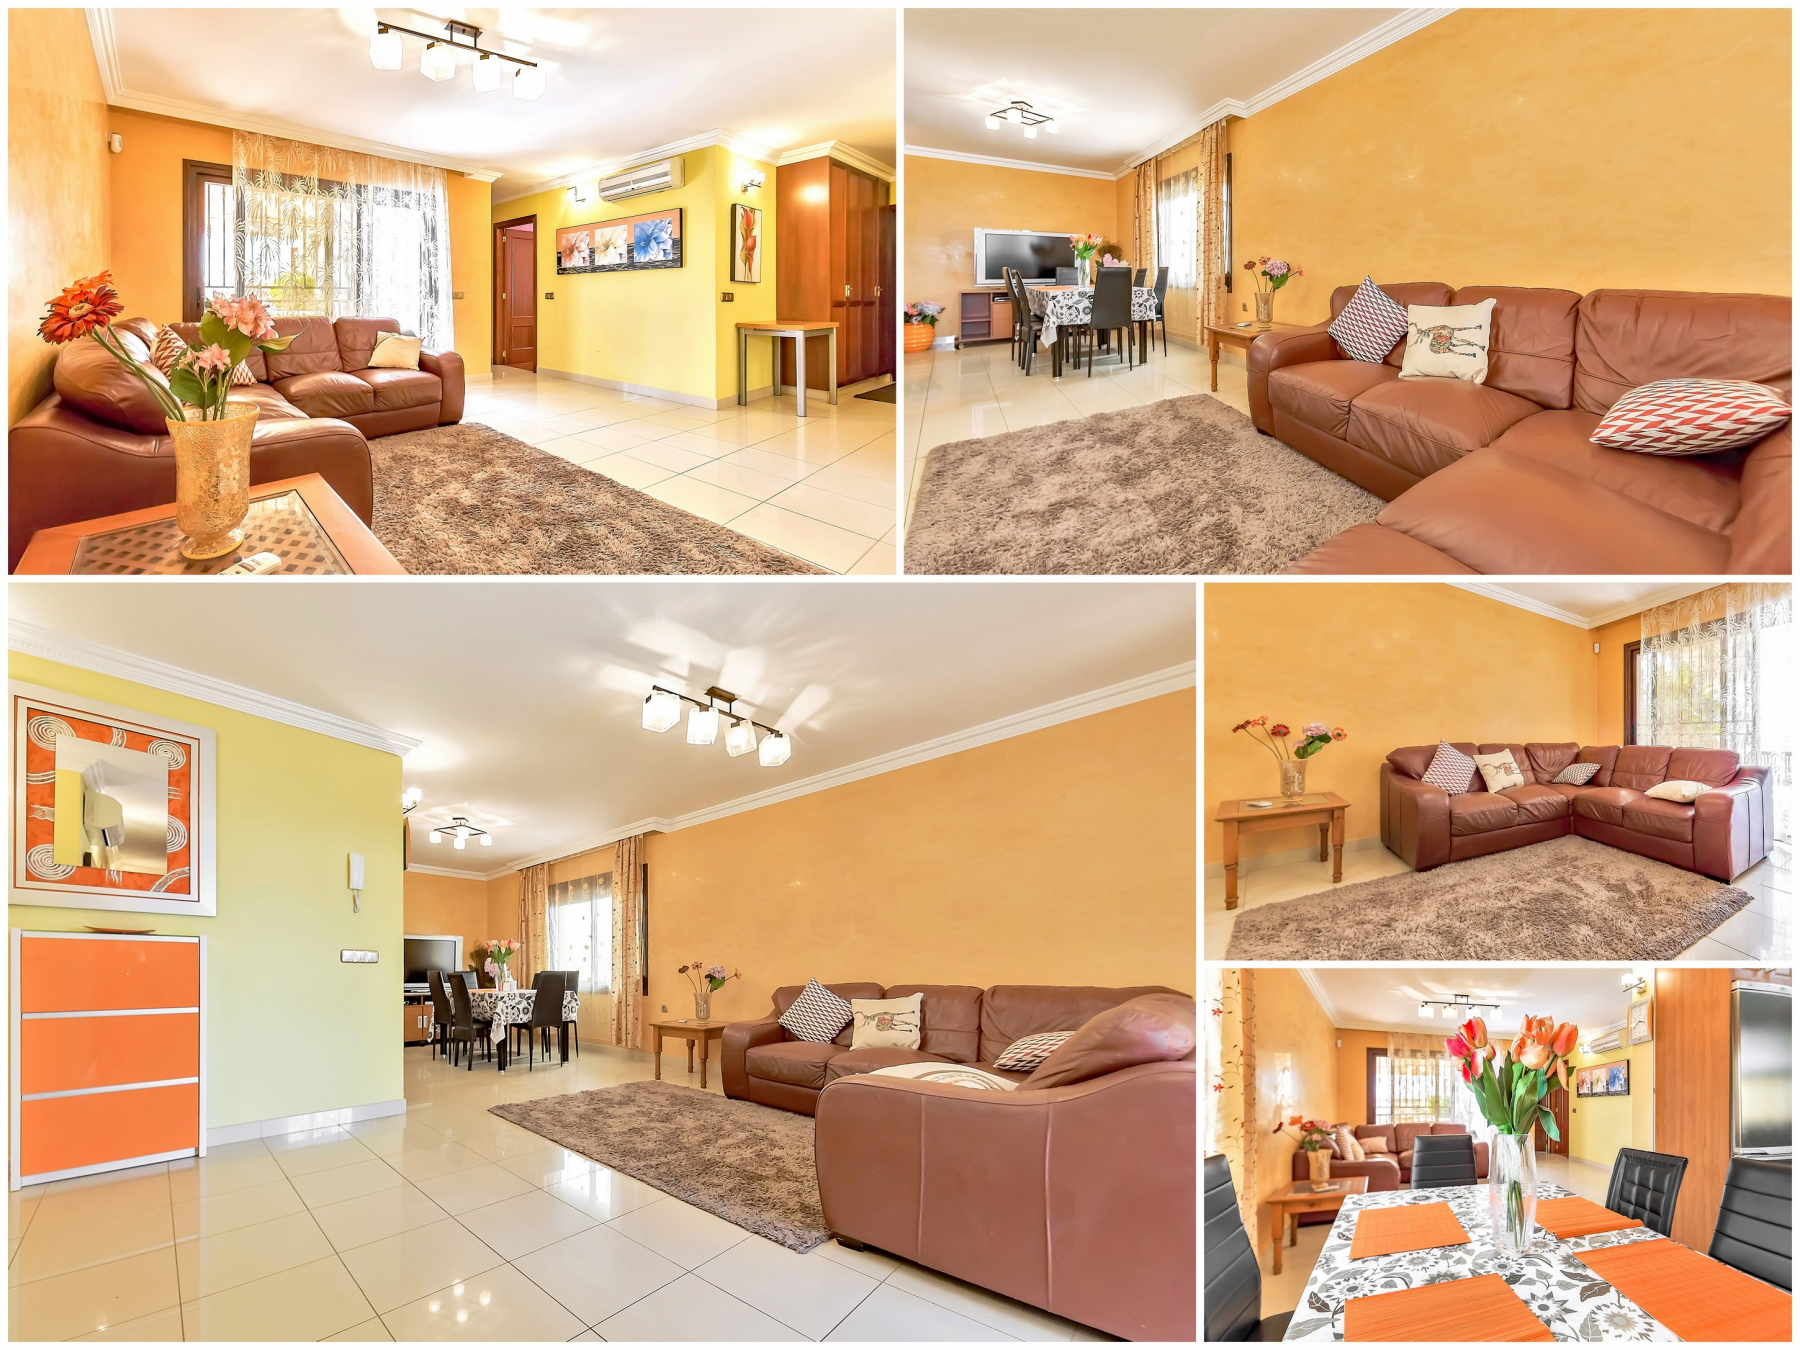 Properties for Sale in Tenerife, Canary Islands, Spain | SylkWayStar Real Estate. Villa 4 bedrooms Puerto Colon. Image-26075